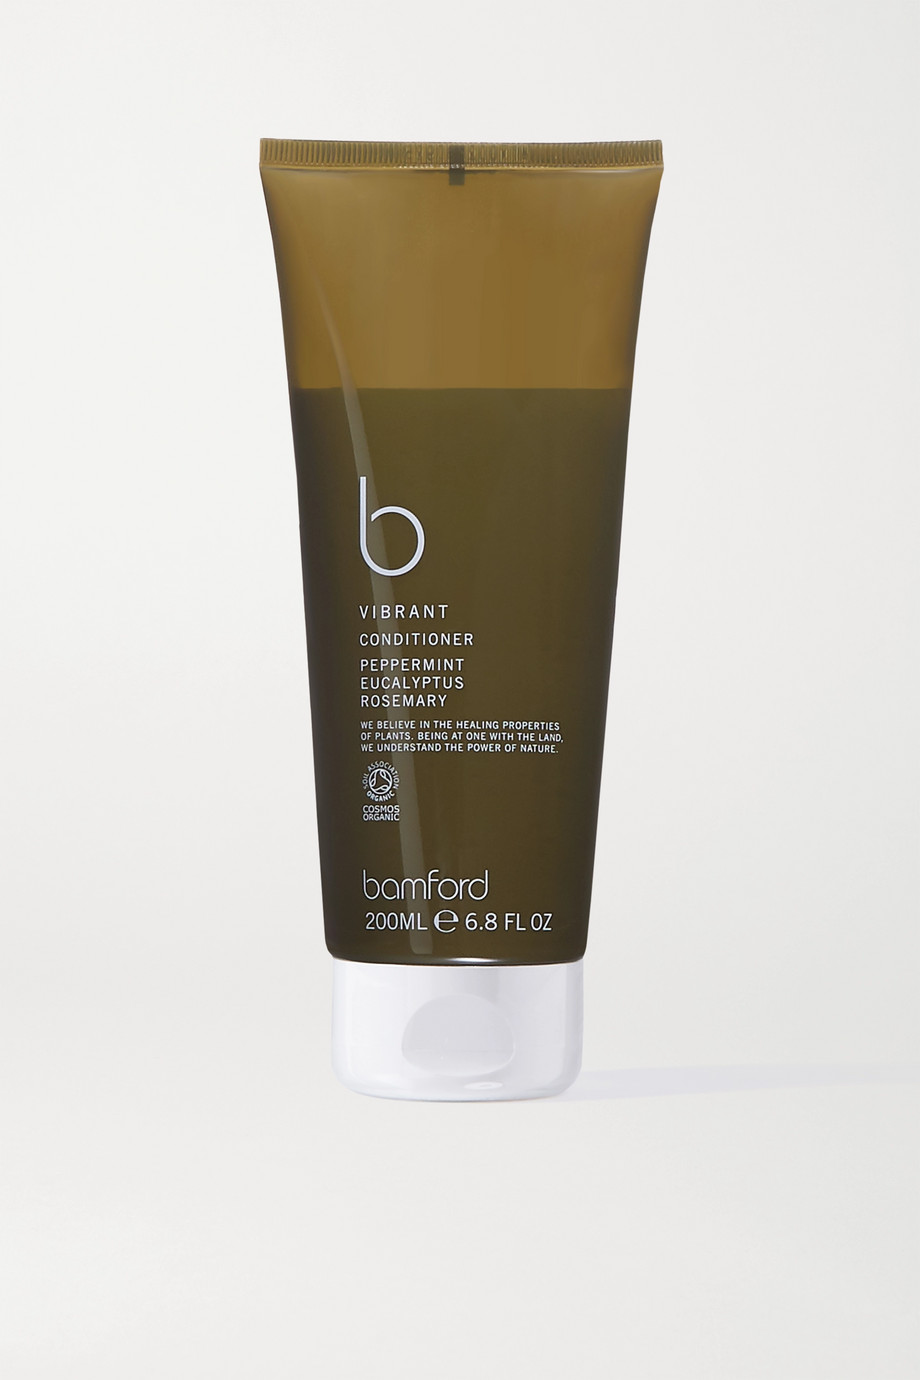 BAMFORD B Vibrant Conditioner, 200ml